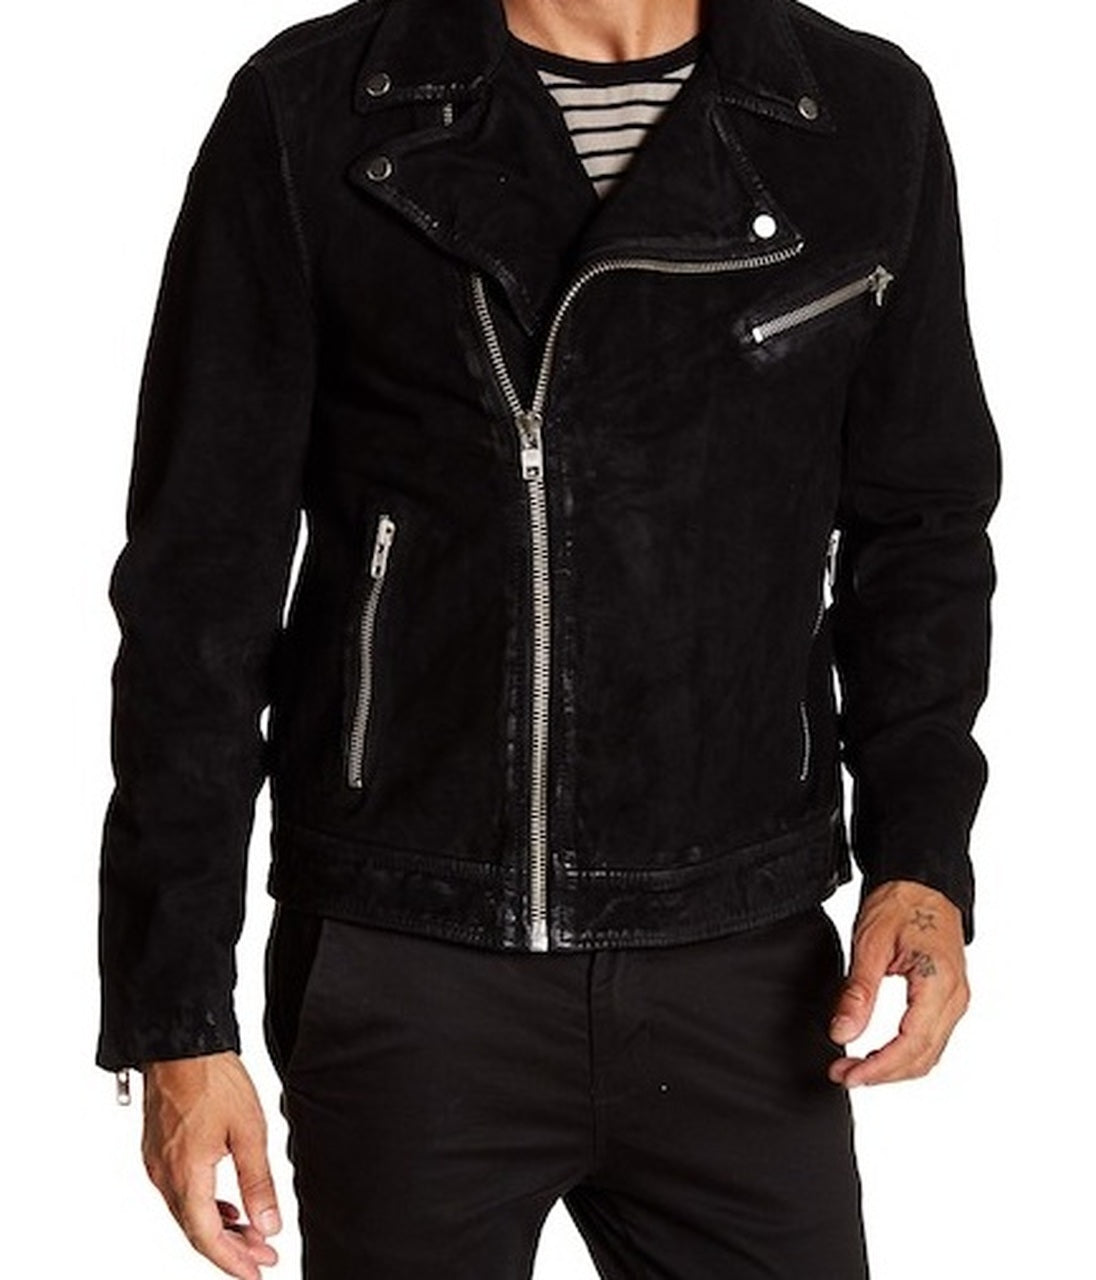 Men's Motorcycle Style Zipper Black  Suede Leather Jacket